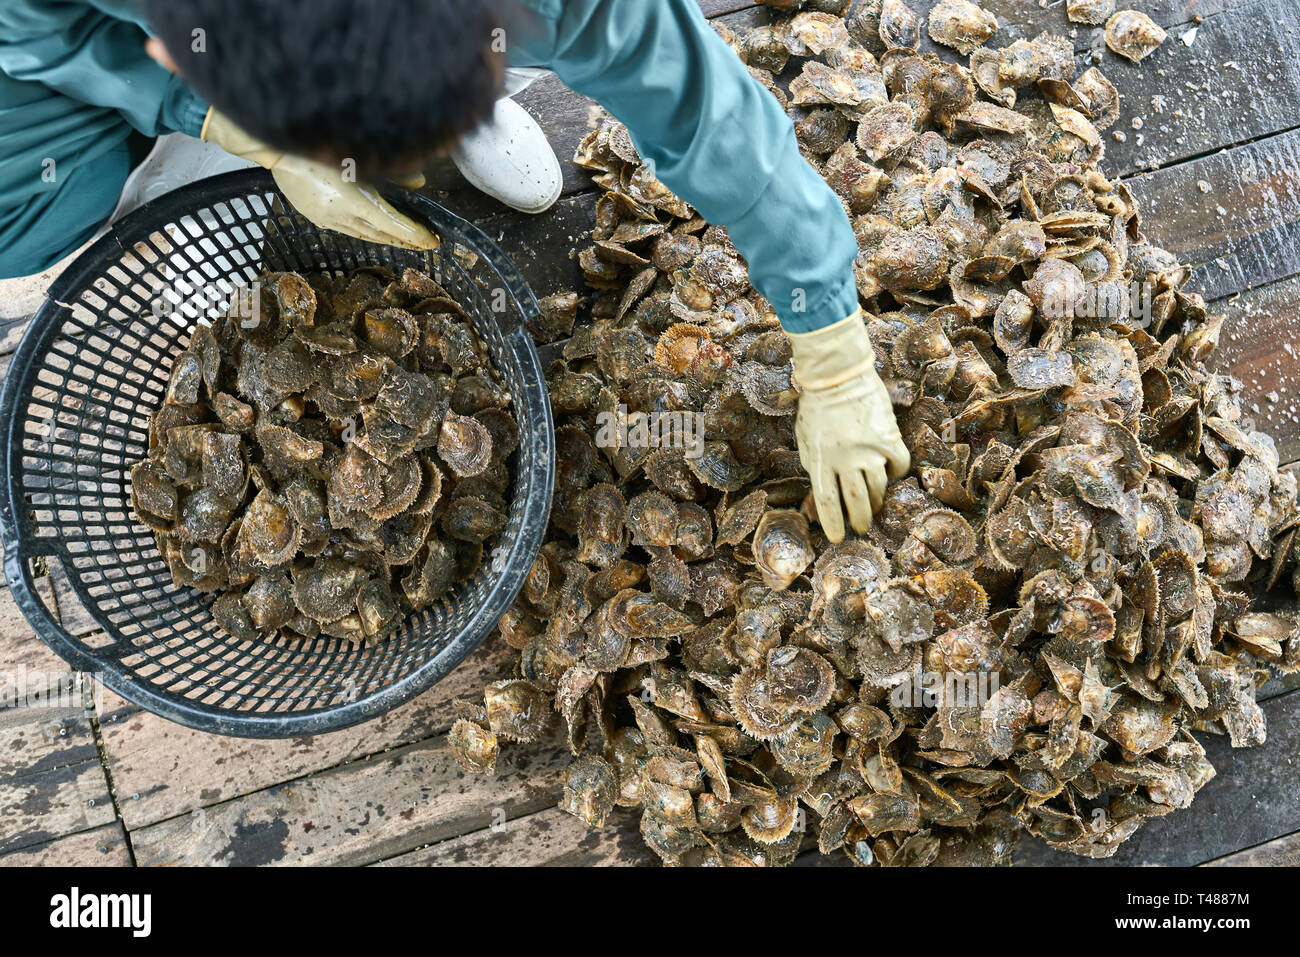 Mollusk sorting process on oyster farm in Vietnam - Stock Image